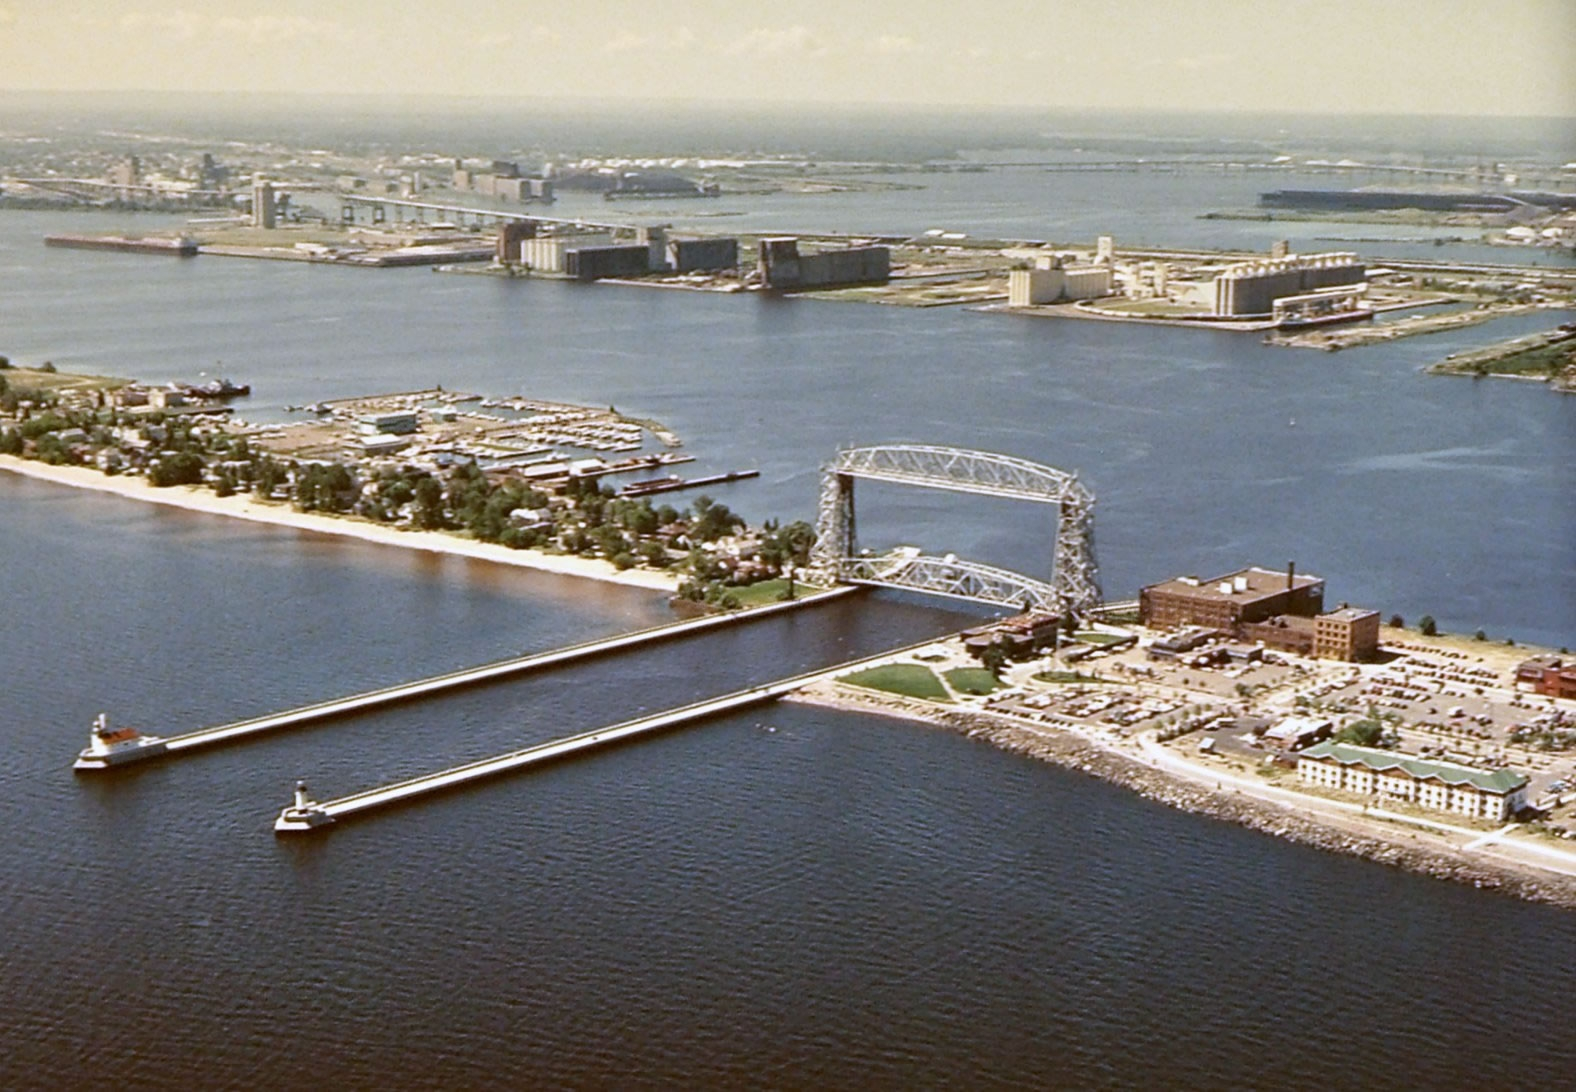 Duluth Superior S Harbor Technical Advisory Committee A Model For Successful Stakeholder